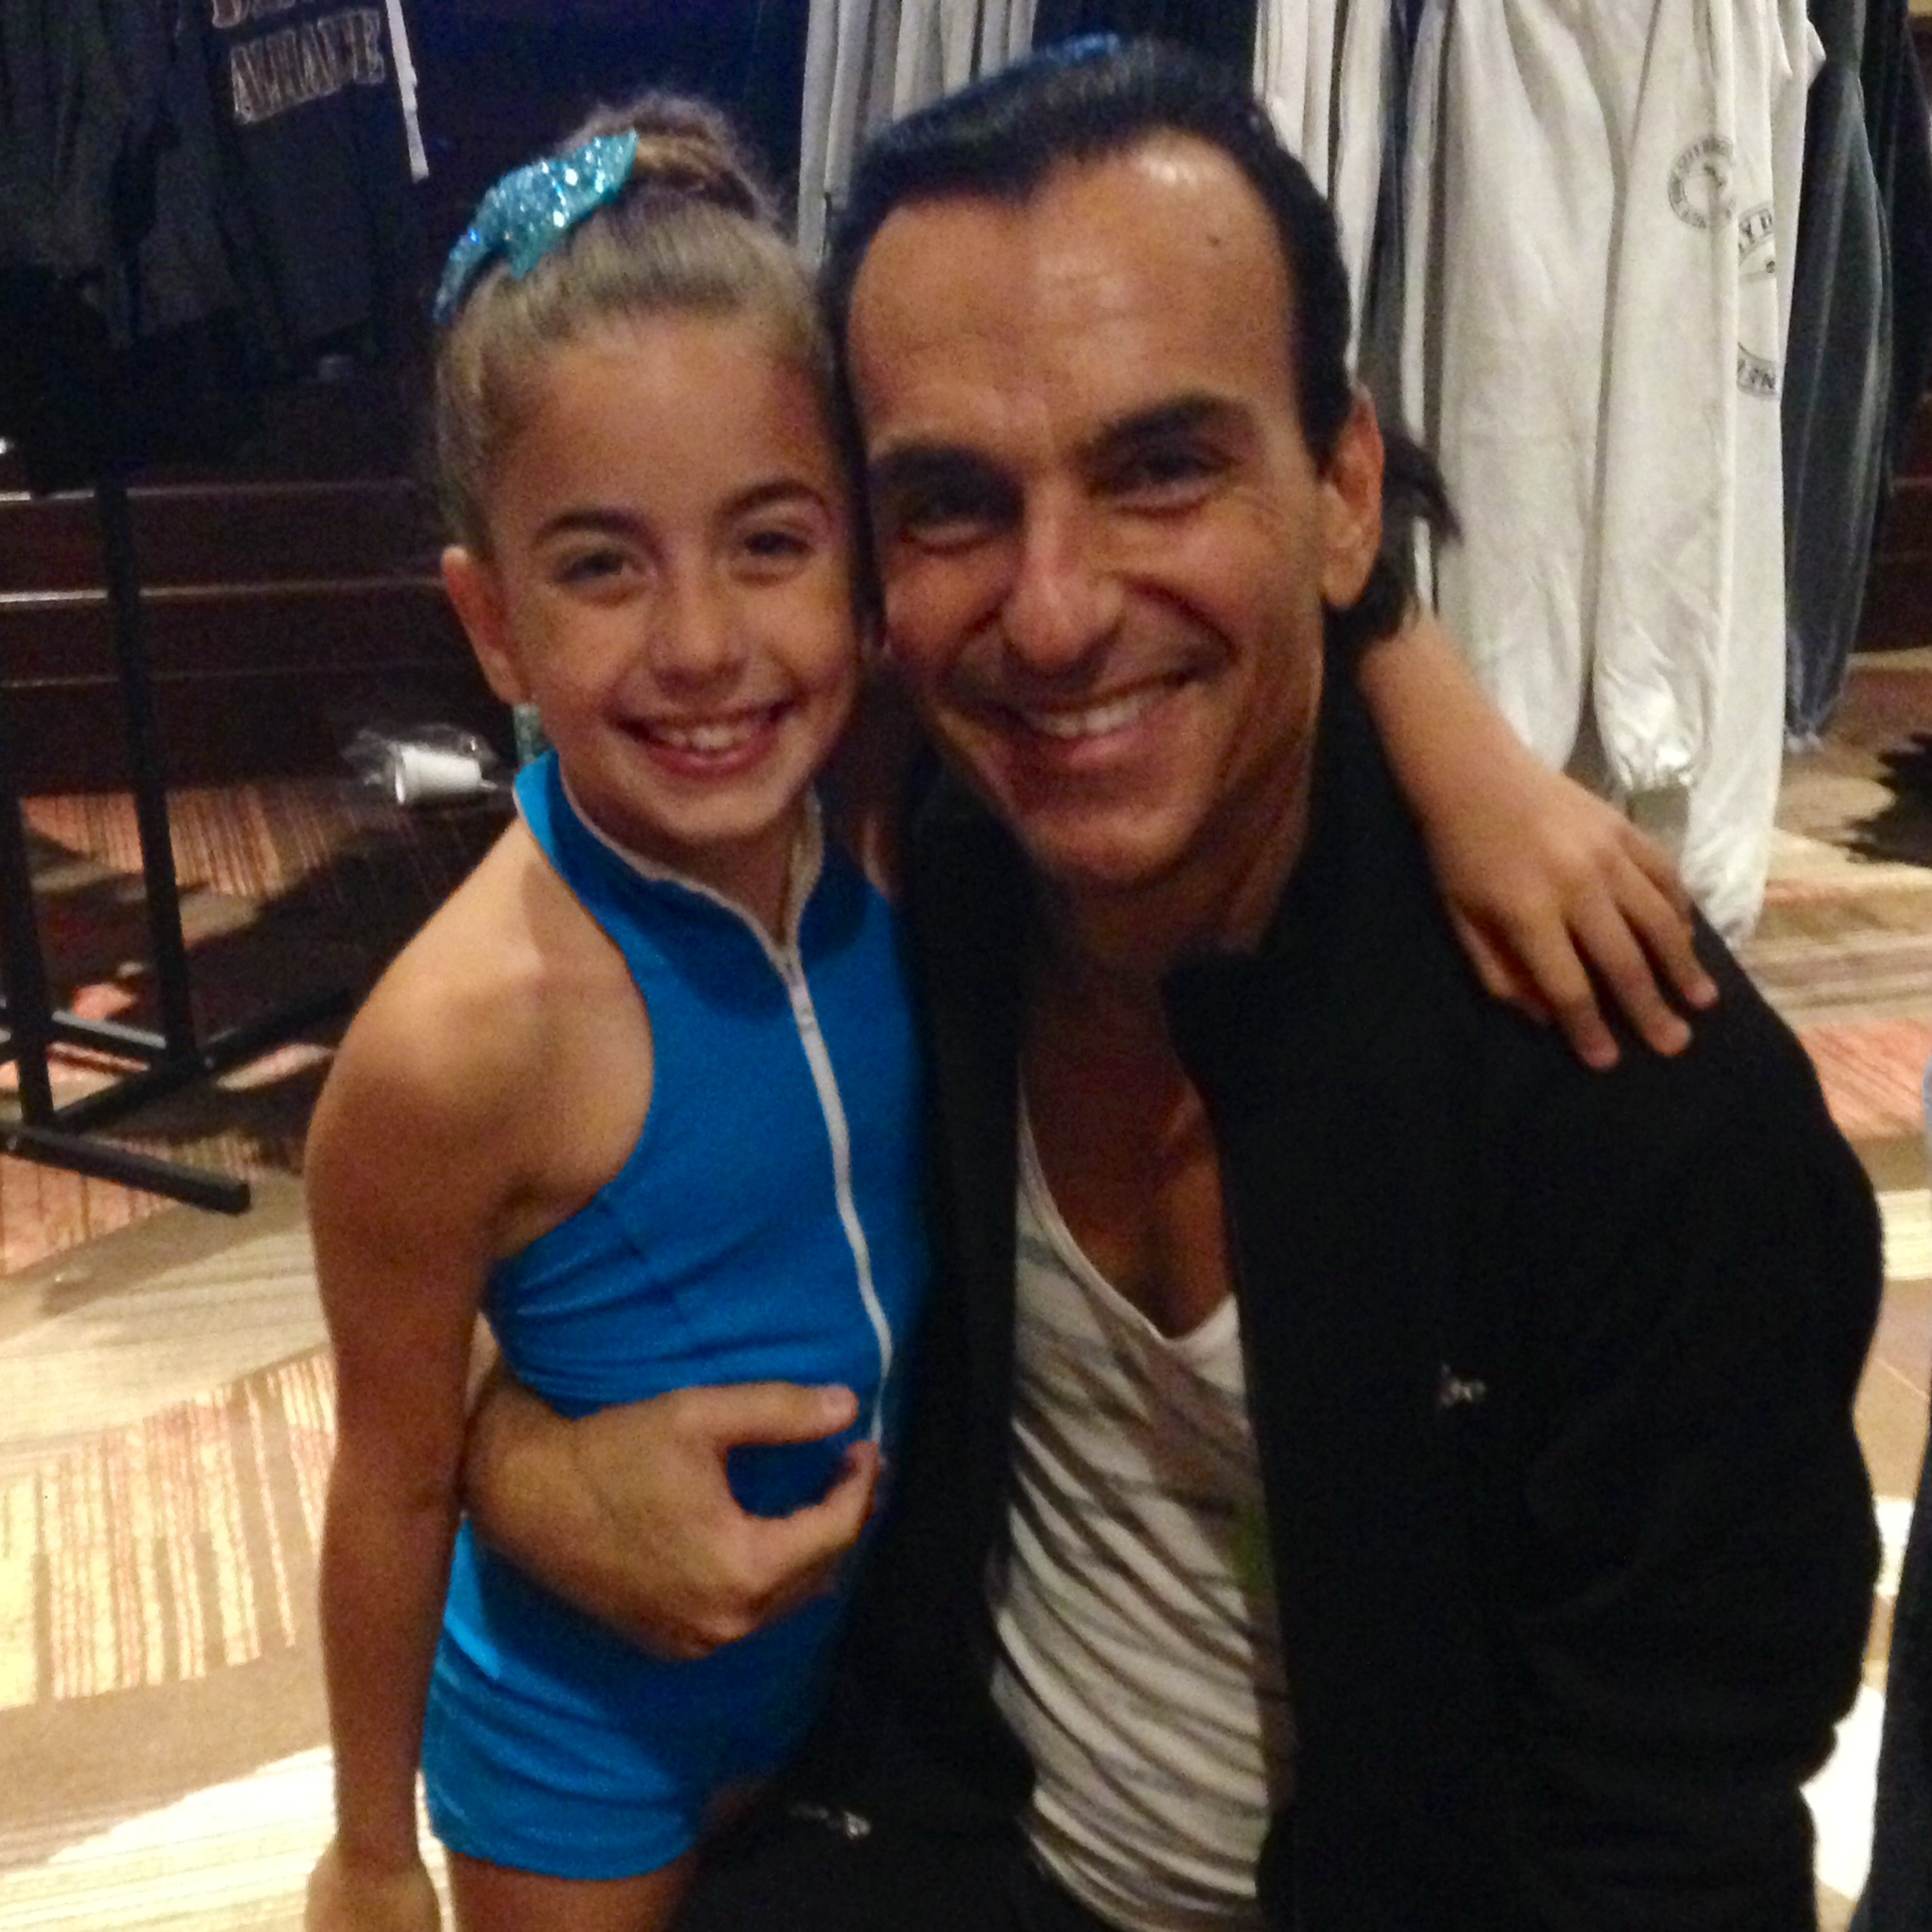 GiaNina-with-Joe-Lanteri-at-NYCDA-Nationals-2014.jpg